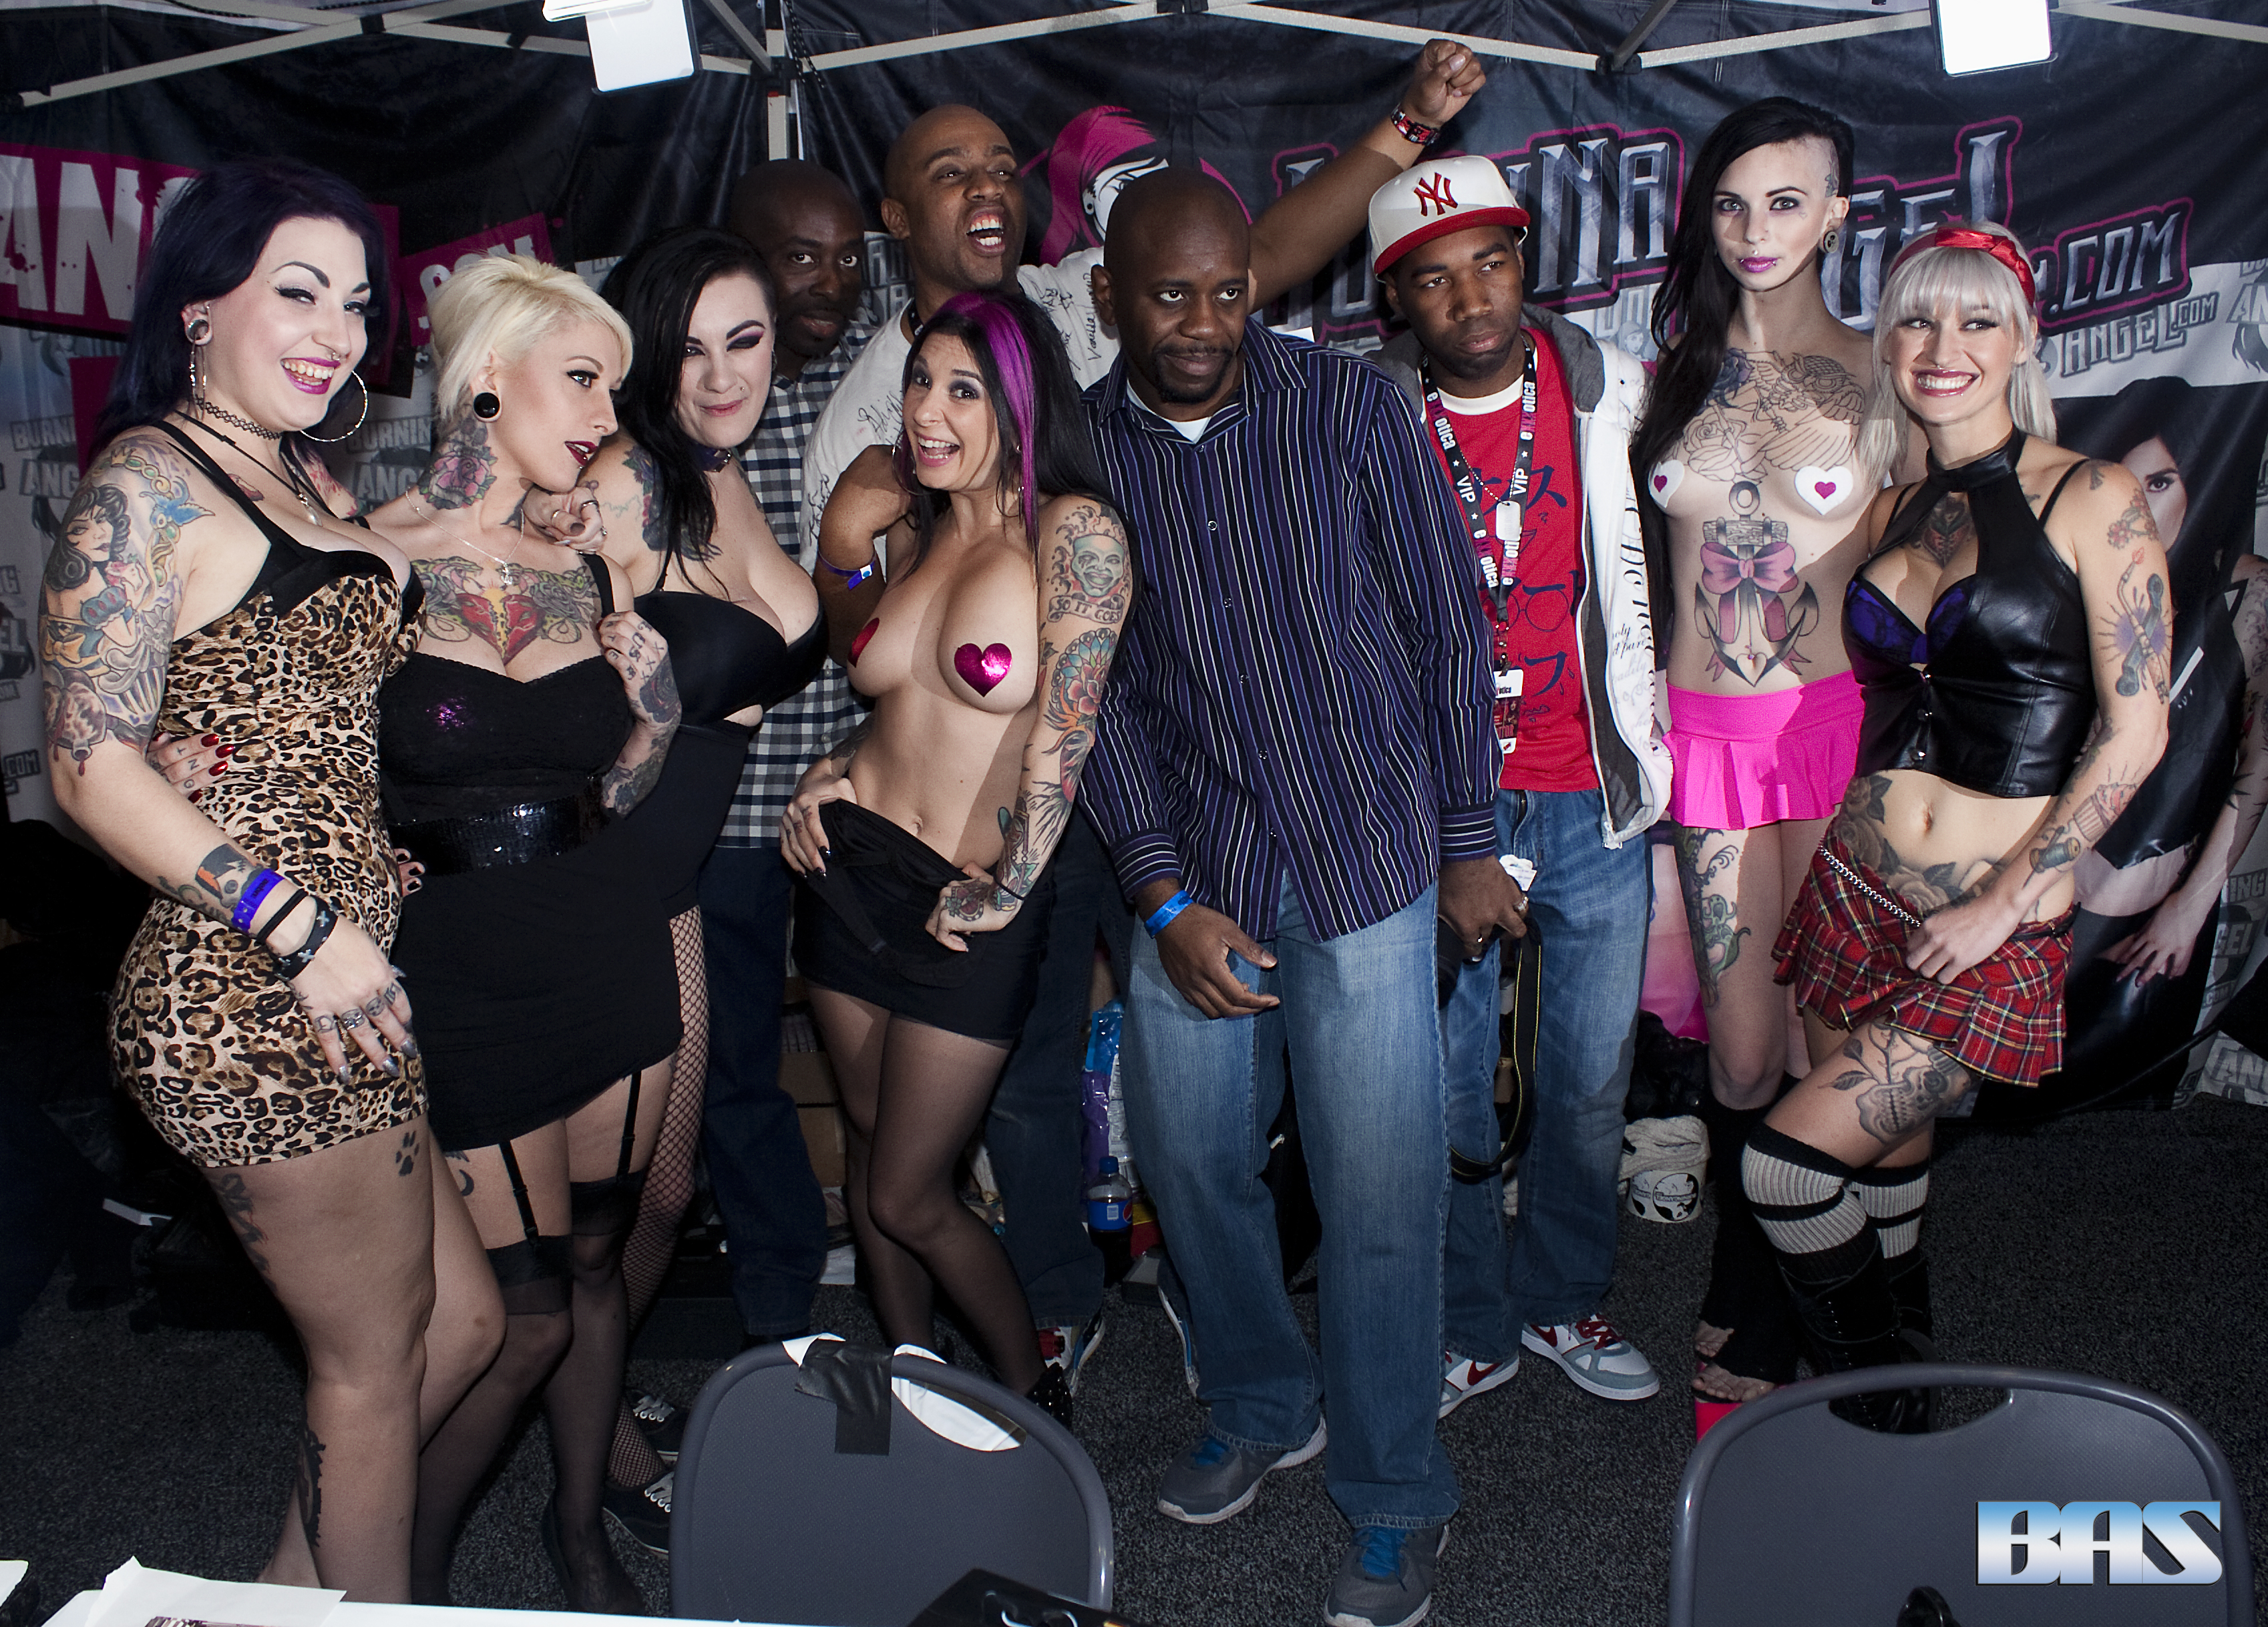 Draven_Star,_Jessie_Lee,_Scarlet_LaVey,_Joanna_Angel,_Sierra_Cure_and_Kleio_Valentien_at_Exxxotica_New_Jersey_2014_(16284285245)